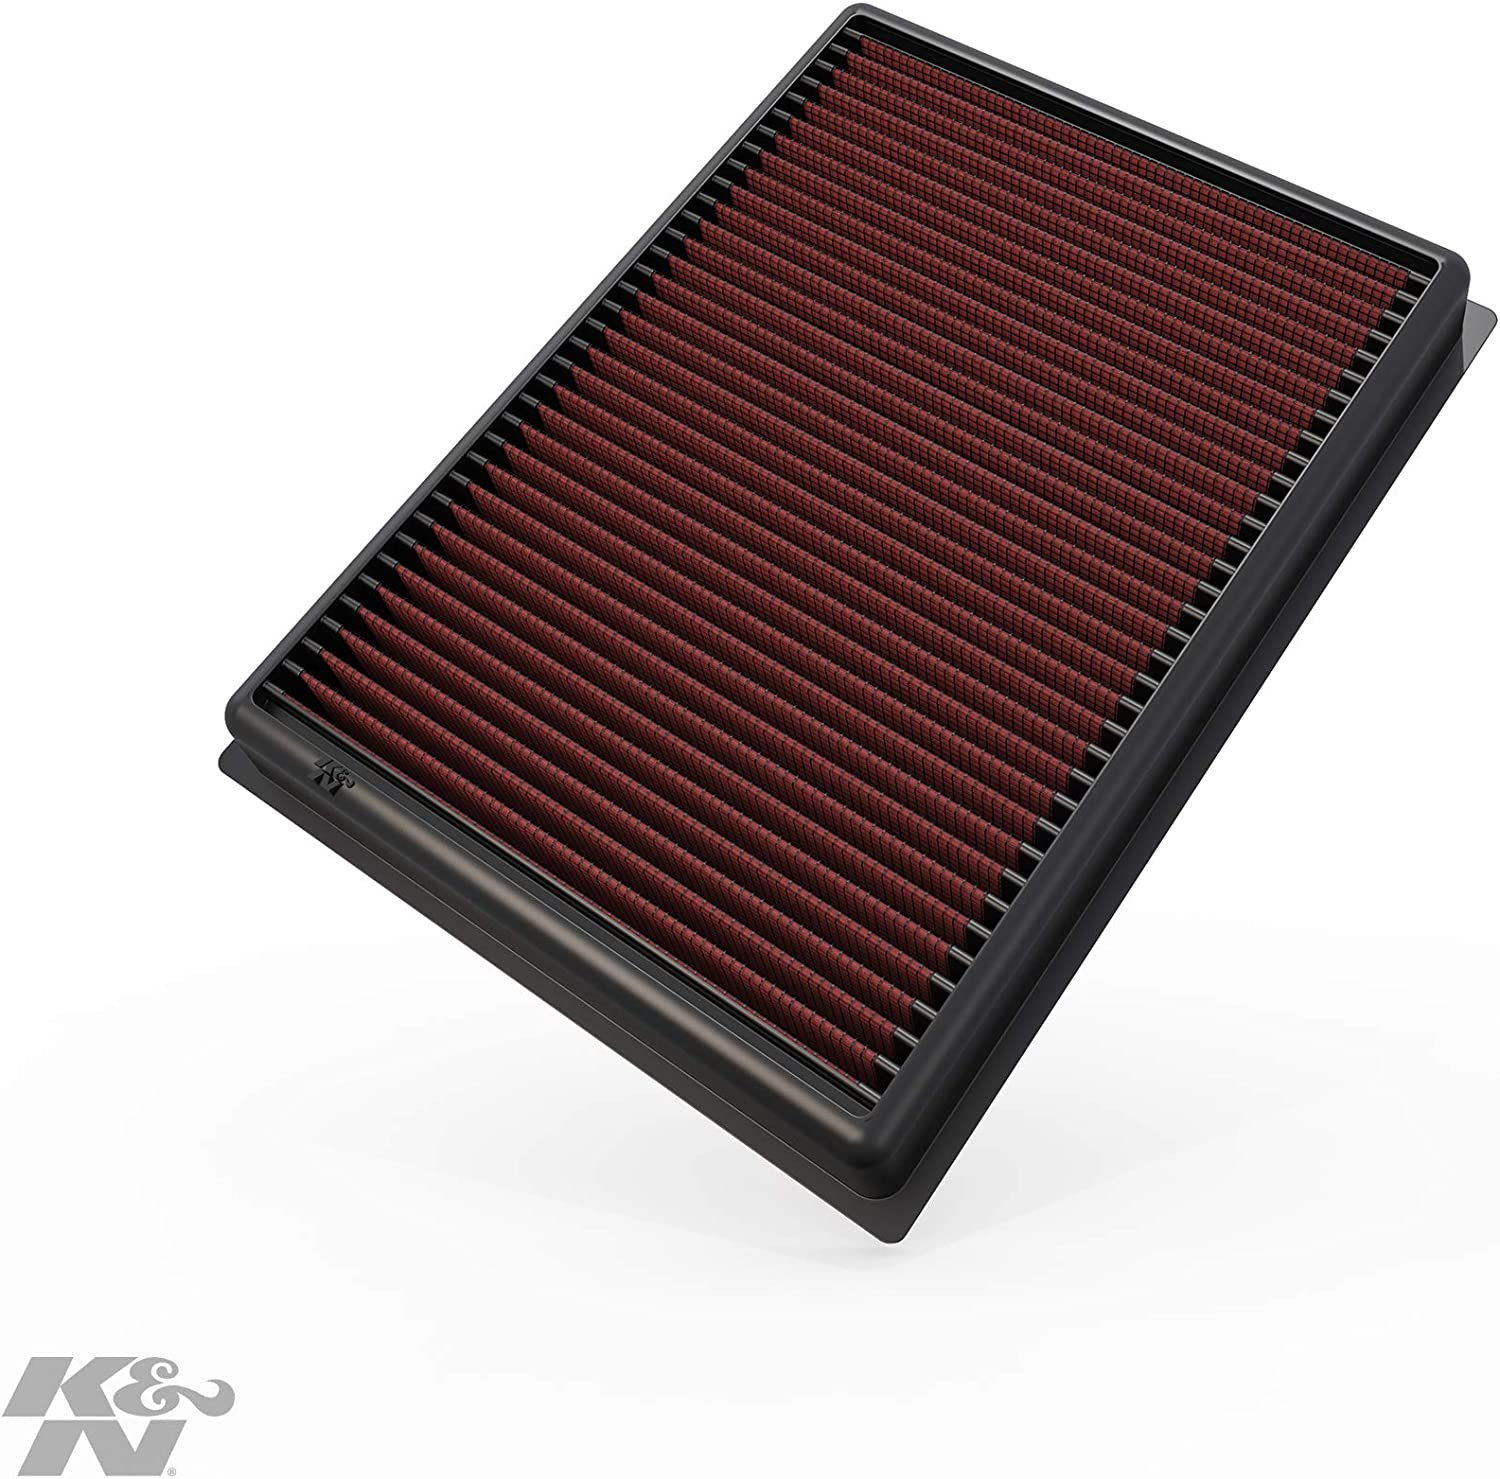 K&N Engine Air Filter: High Performance, Premium, Washable, Replacement Filter: 2010-2019 Toyota/Lexus SUV V6/V8 (4runner, GX460, Land Cruiser, FJ Cruiser, Prado), 33-2438